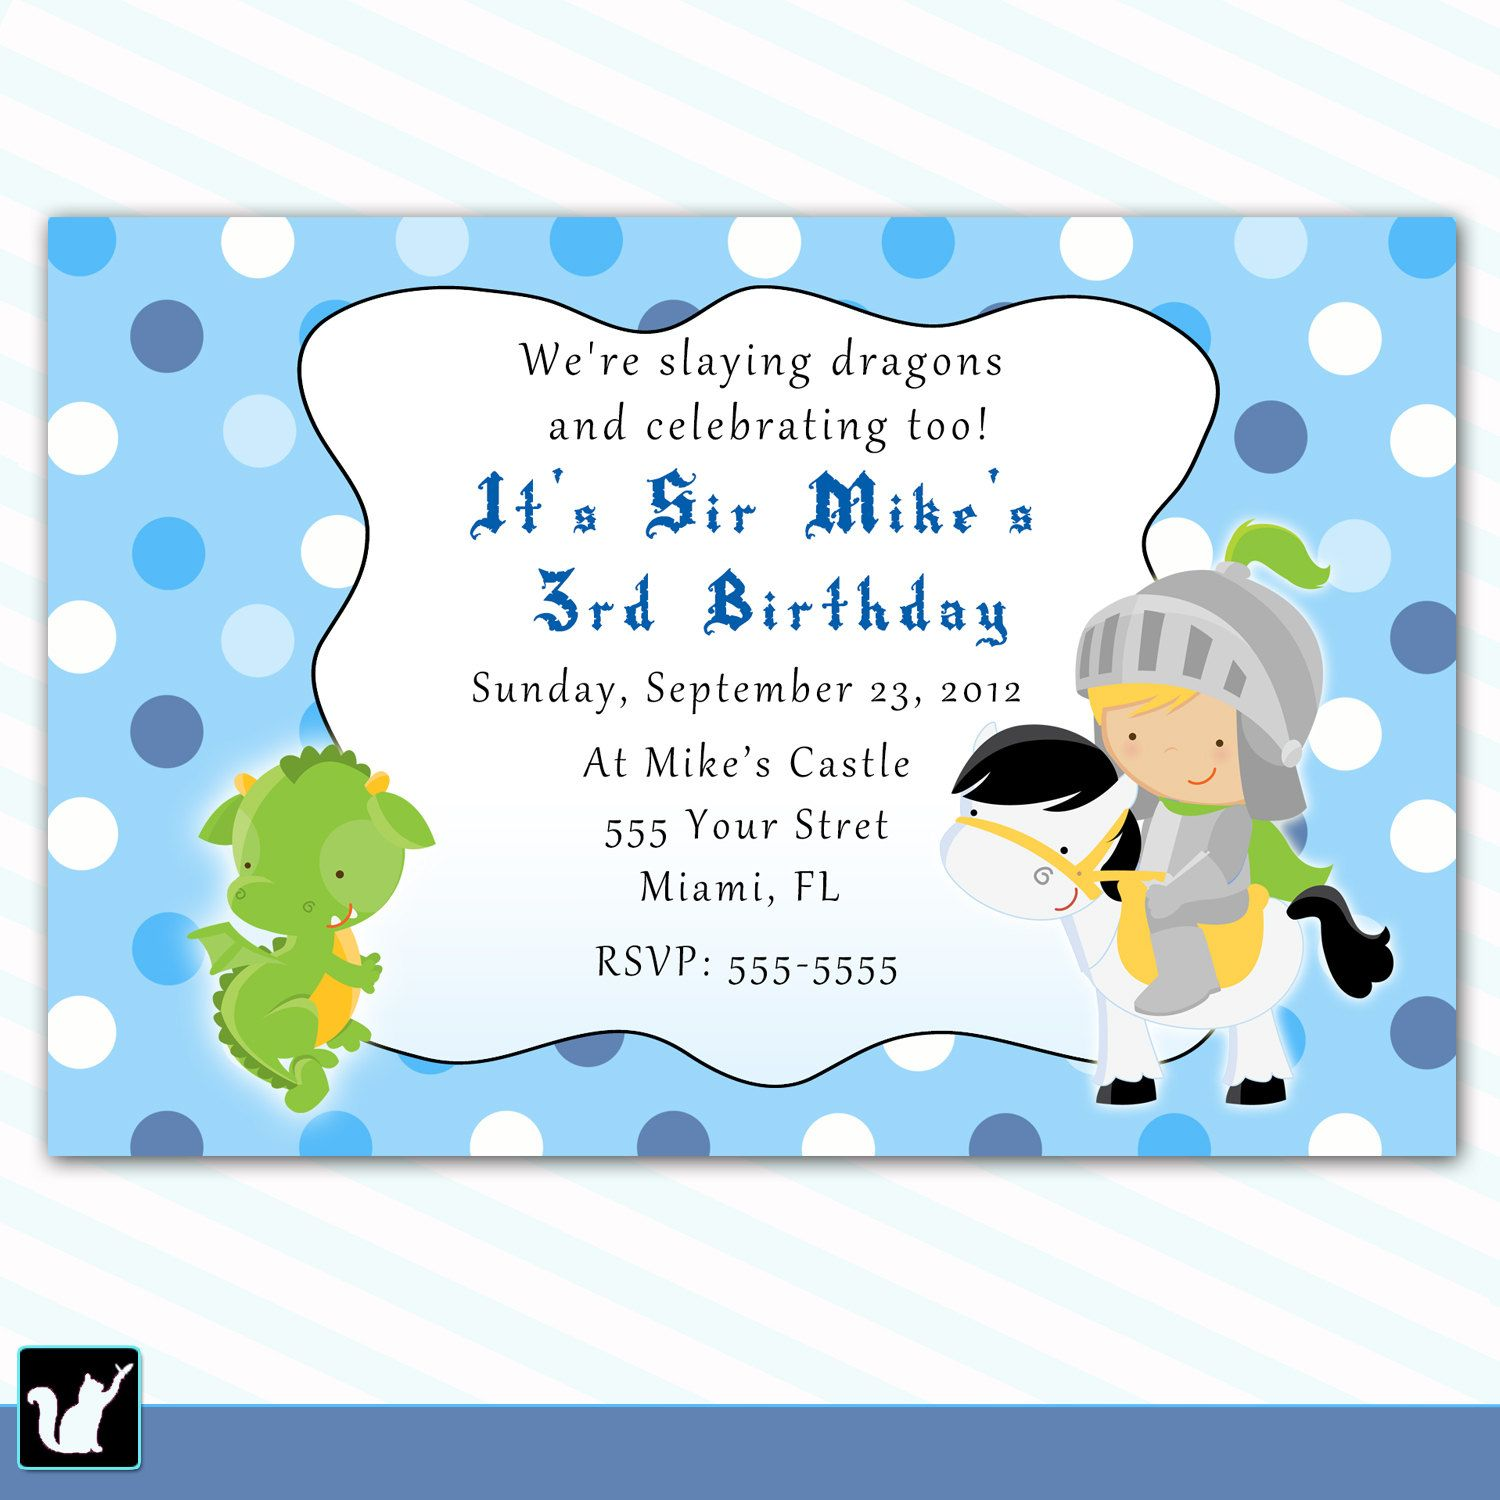 knight birthday invitation for boy dragon printable personalized cute printable personalized knight dragon boy birthday party invitation card printing available costume custom blue